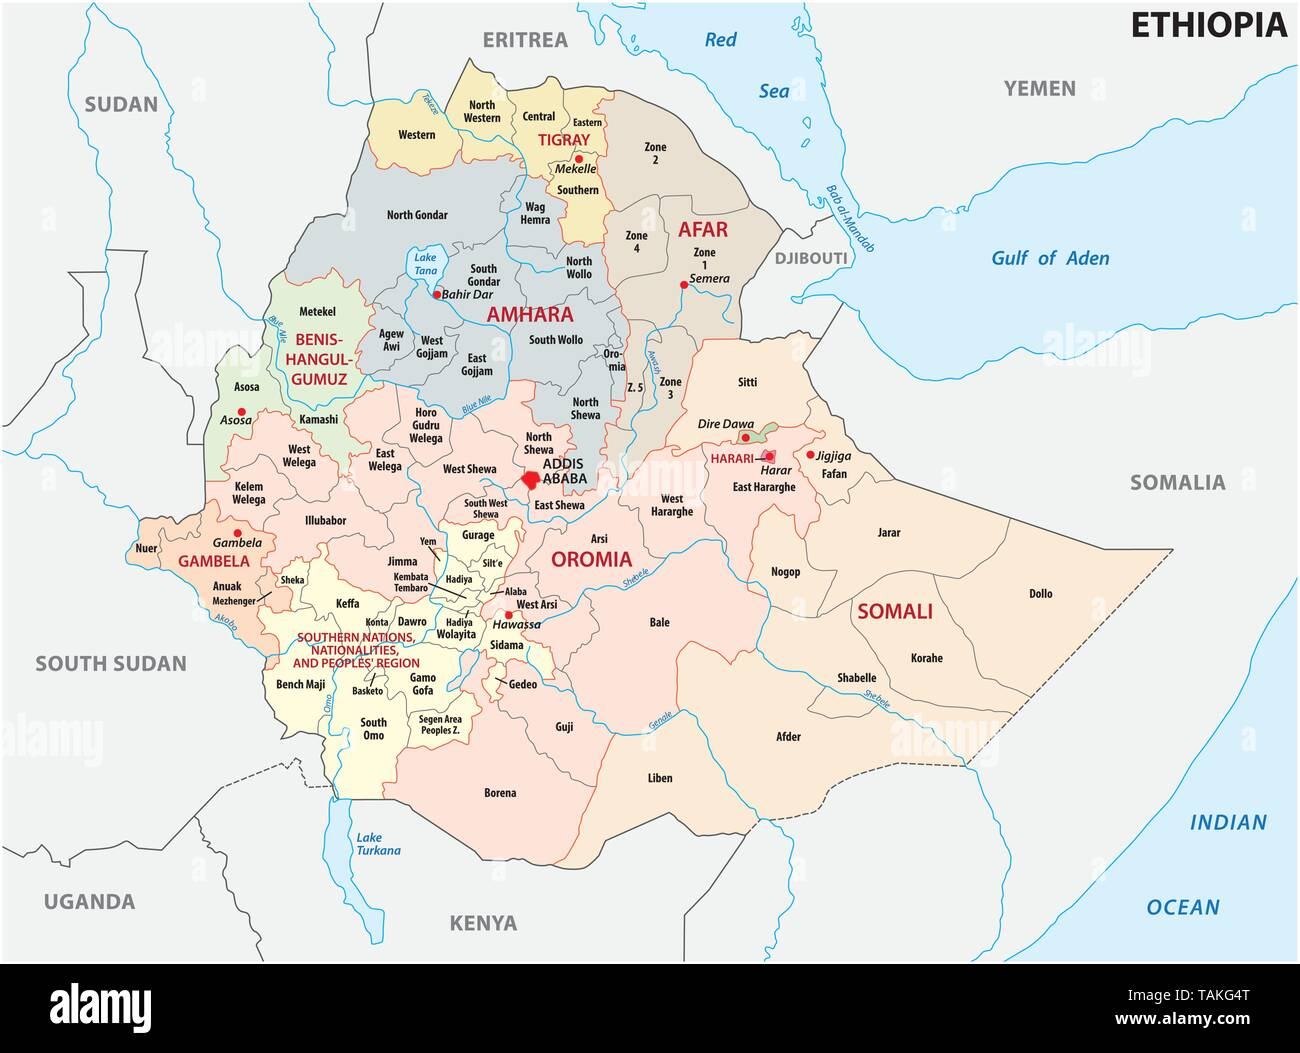 Ethiopia administrative and political map - Stock Vector